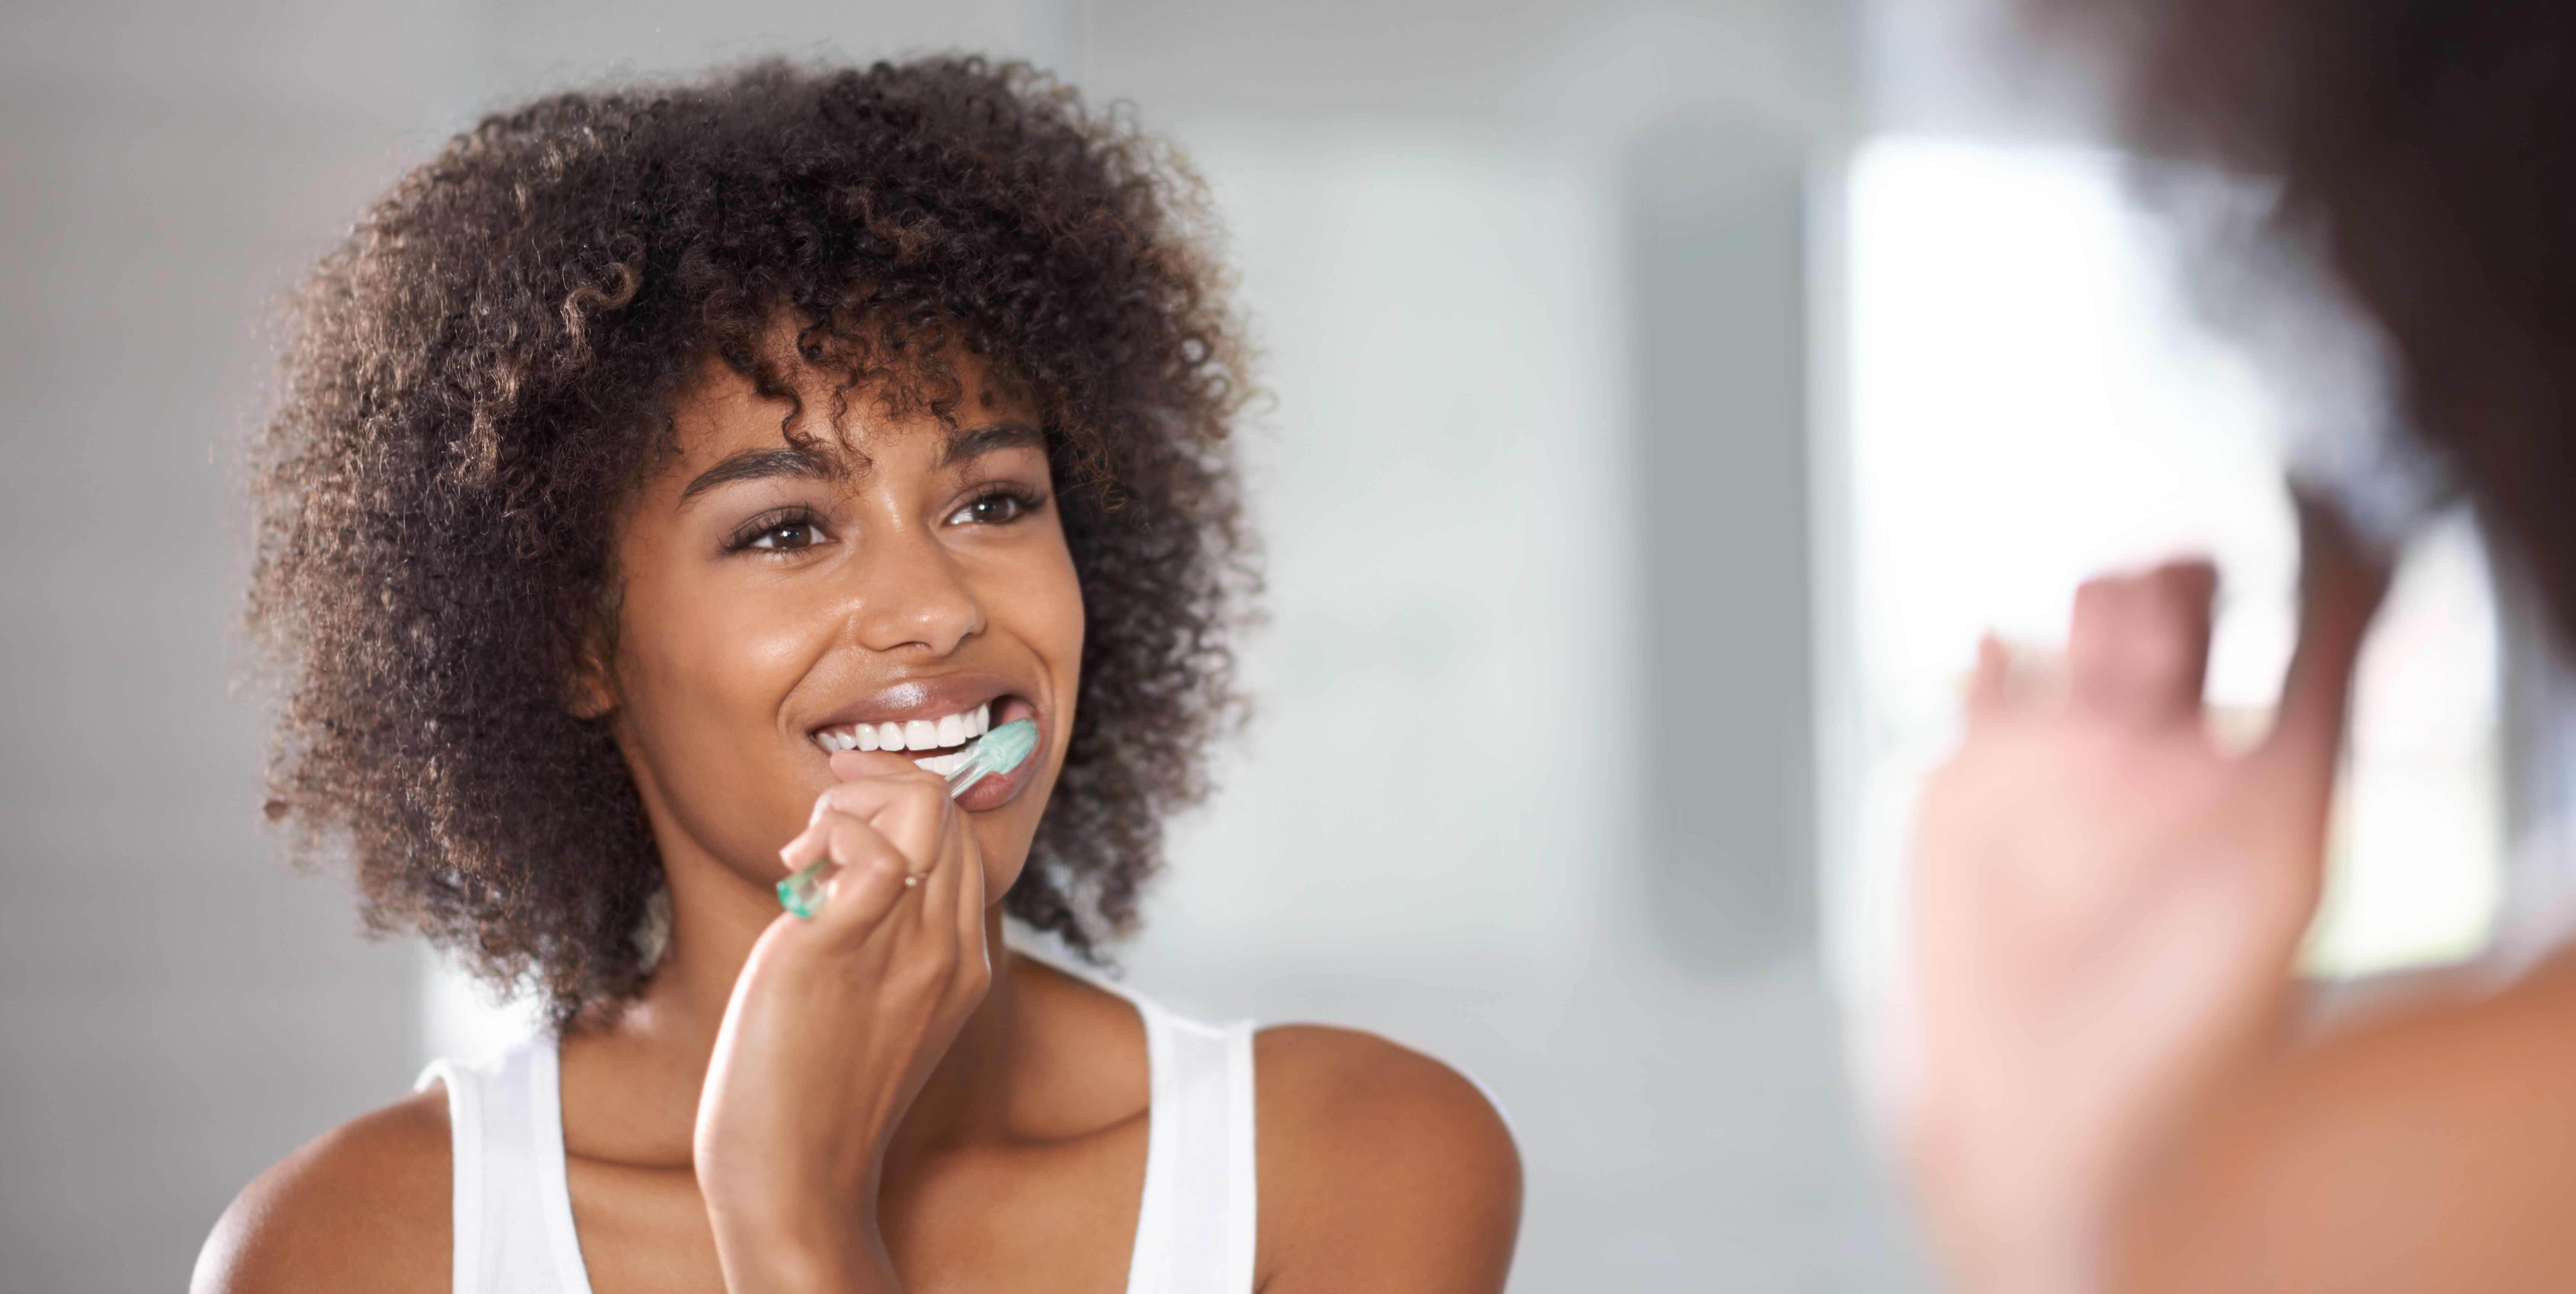 Keeping a pearly white smile